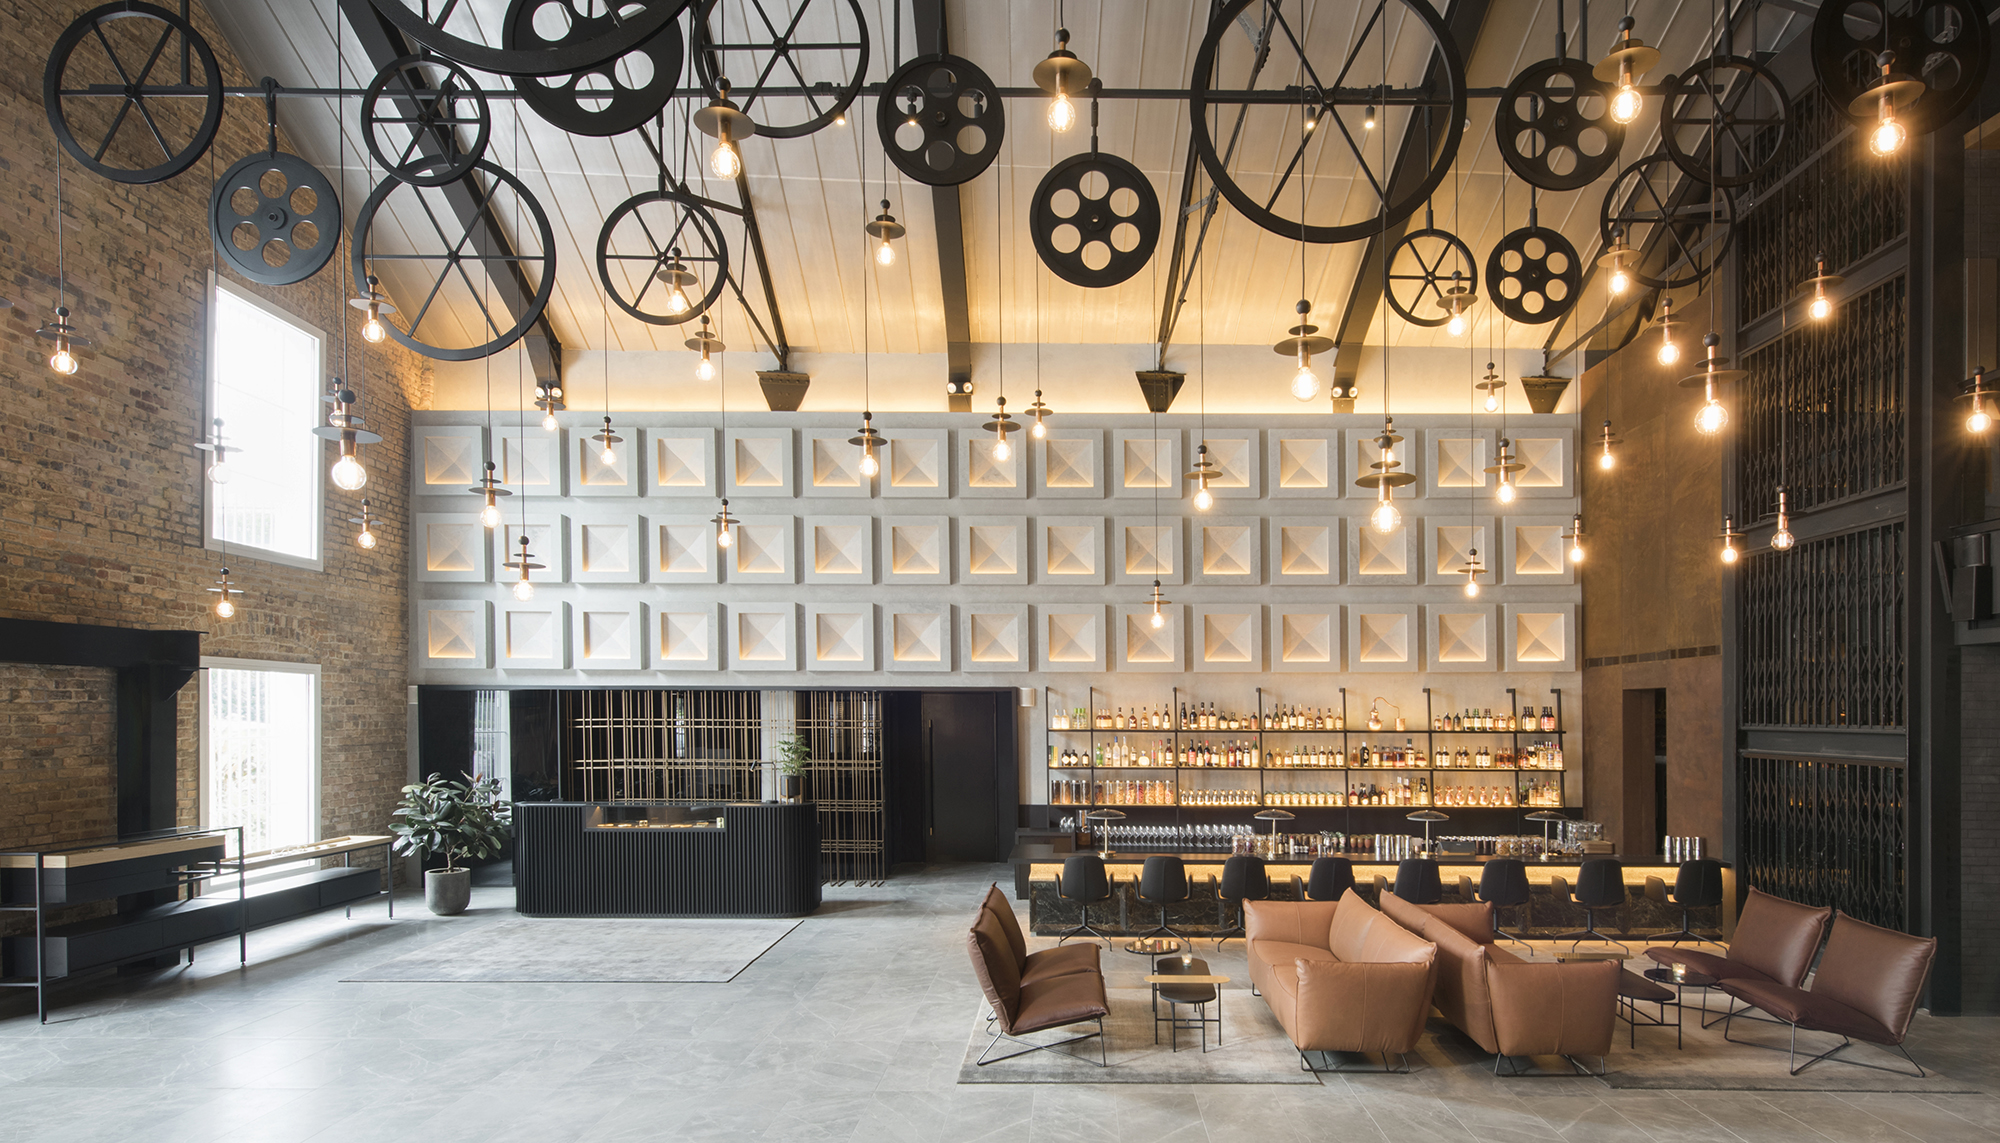 The Warehouse Hotel_Lobby and Bar_Lo Res.jpg